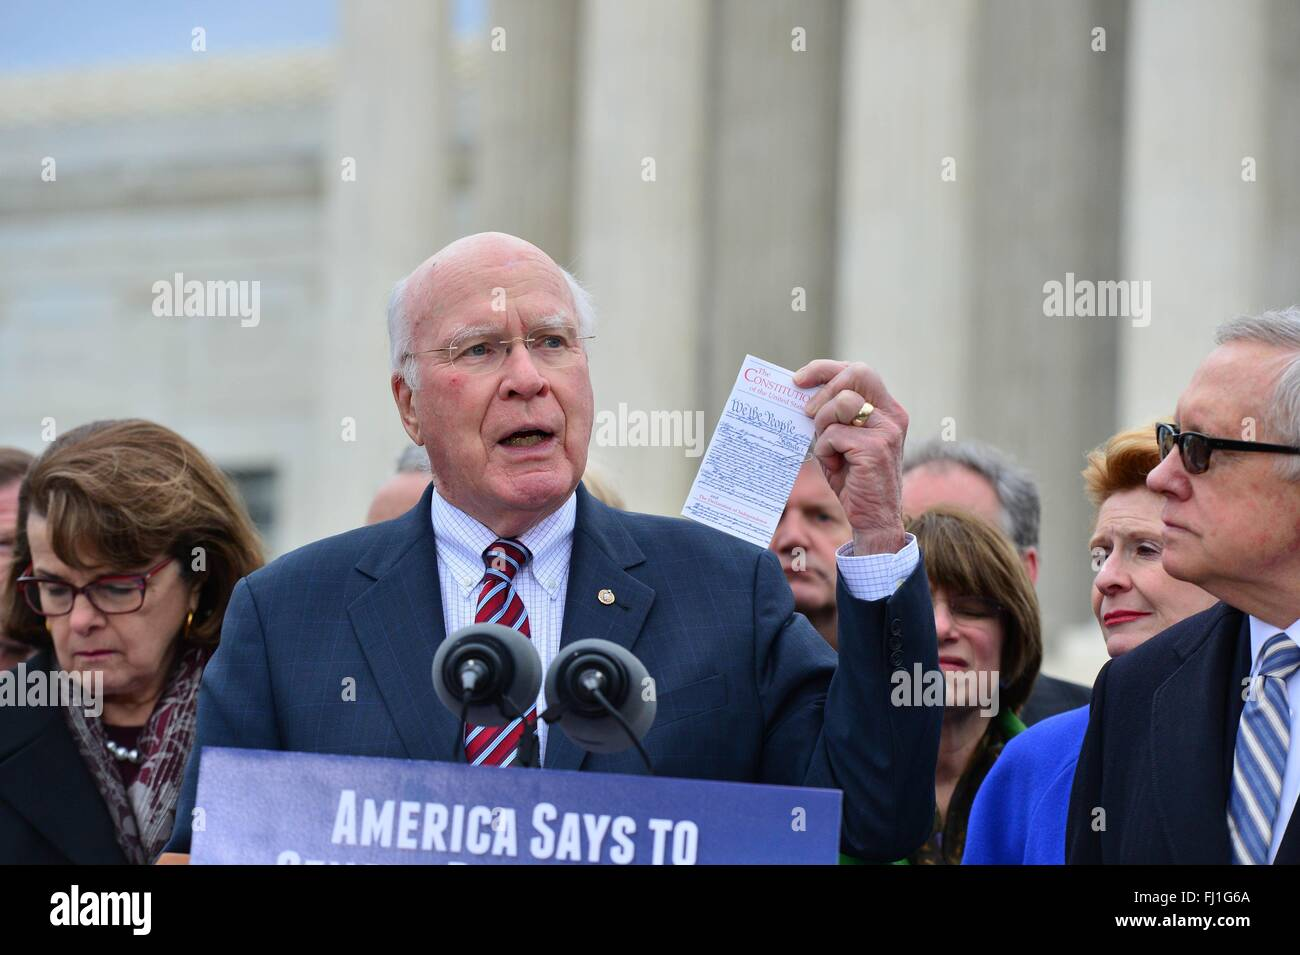 U.S. Senator Patrick Leahy, the ranking member of the Senate Judiciary Committee, and other Democrats call on Republicans - Stock Image